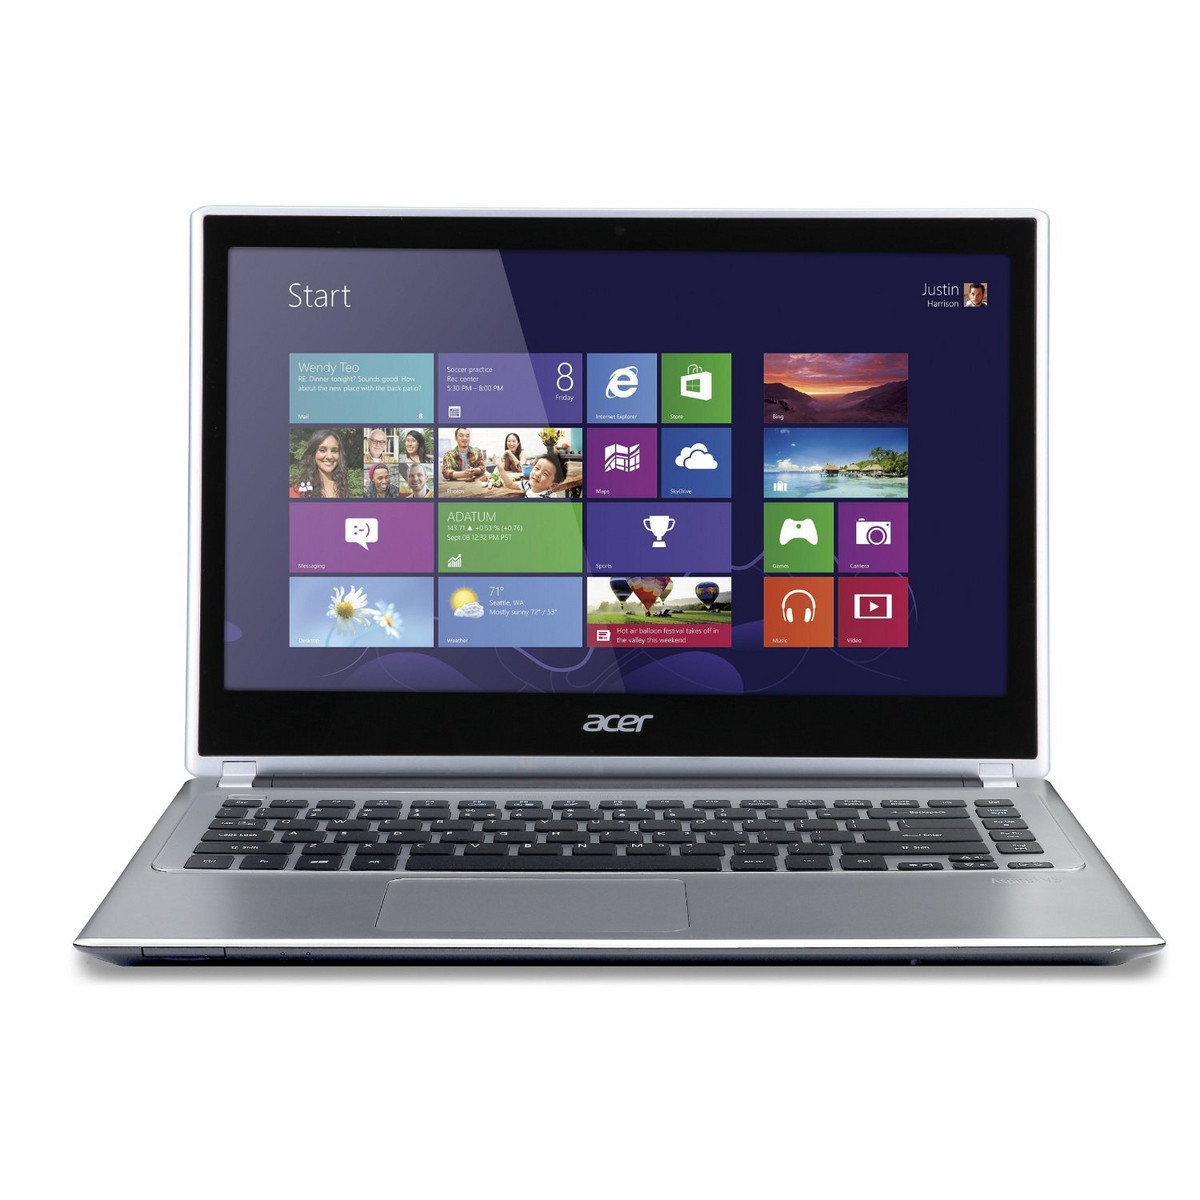 Driver for Acer Aspire V5-431PG Intel Graphics